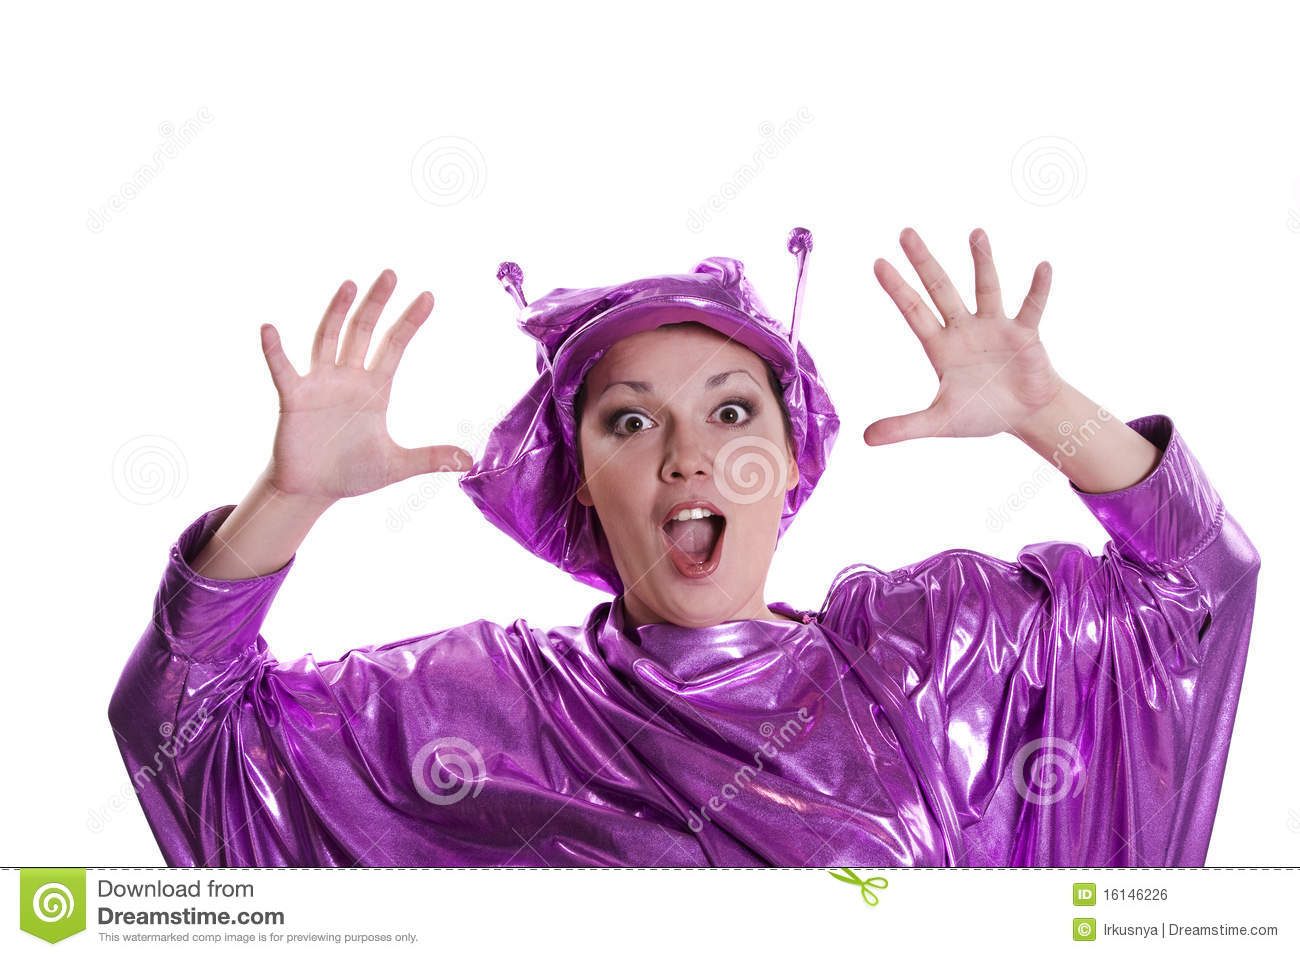 Download comp  sc 1 st  Dreamstime.com & Woman in alien costume stock photo. Image of cheerful - 16146226